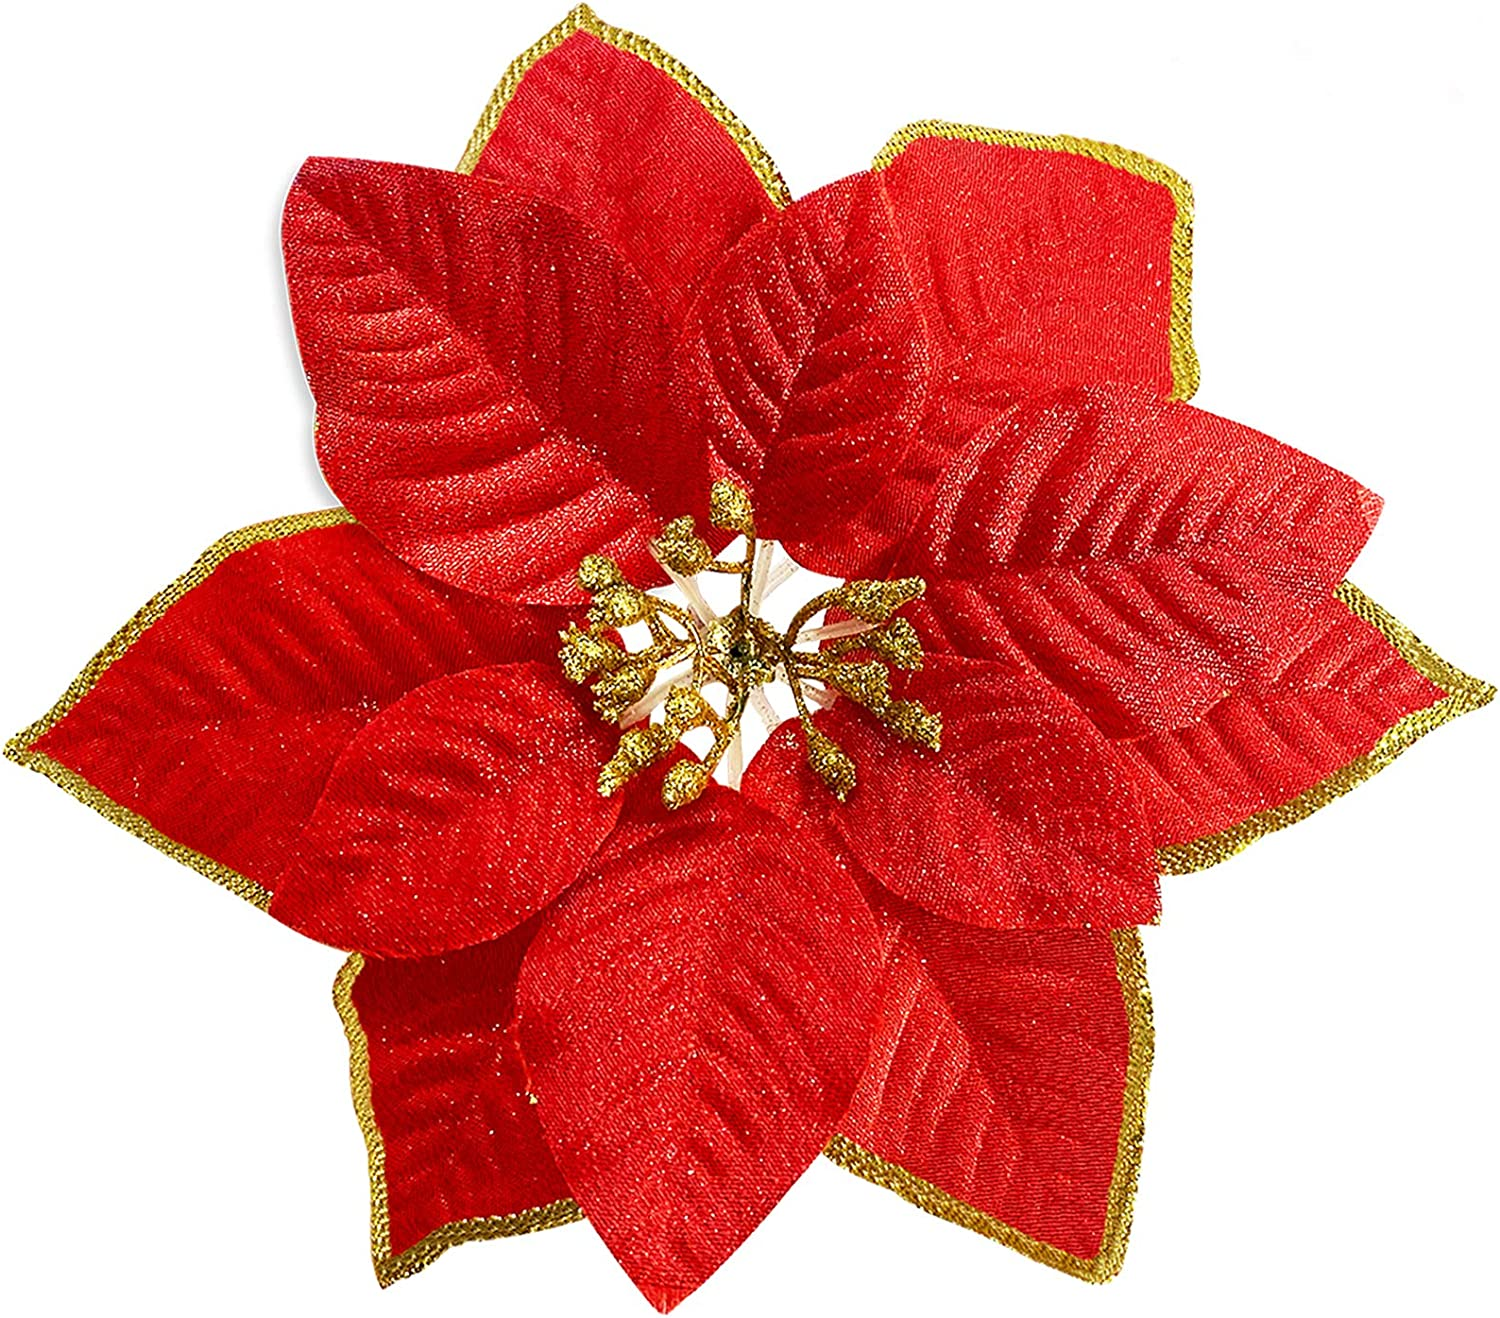 TURNMEON 8.7 Inch Giant Glitter Poinsettia, 12 Pcs Christmas Flowers Picks Decor Artificial Silk Flowers for Christmas Tree Ornaments Wreaths Garland Holiday Decoration (Red)